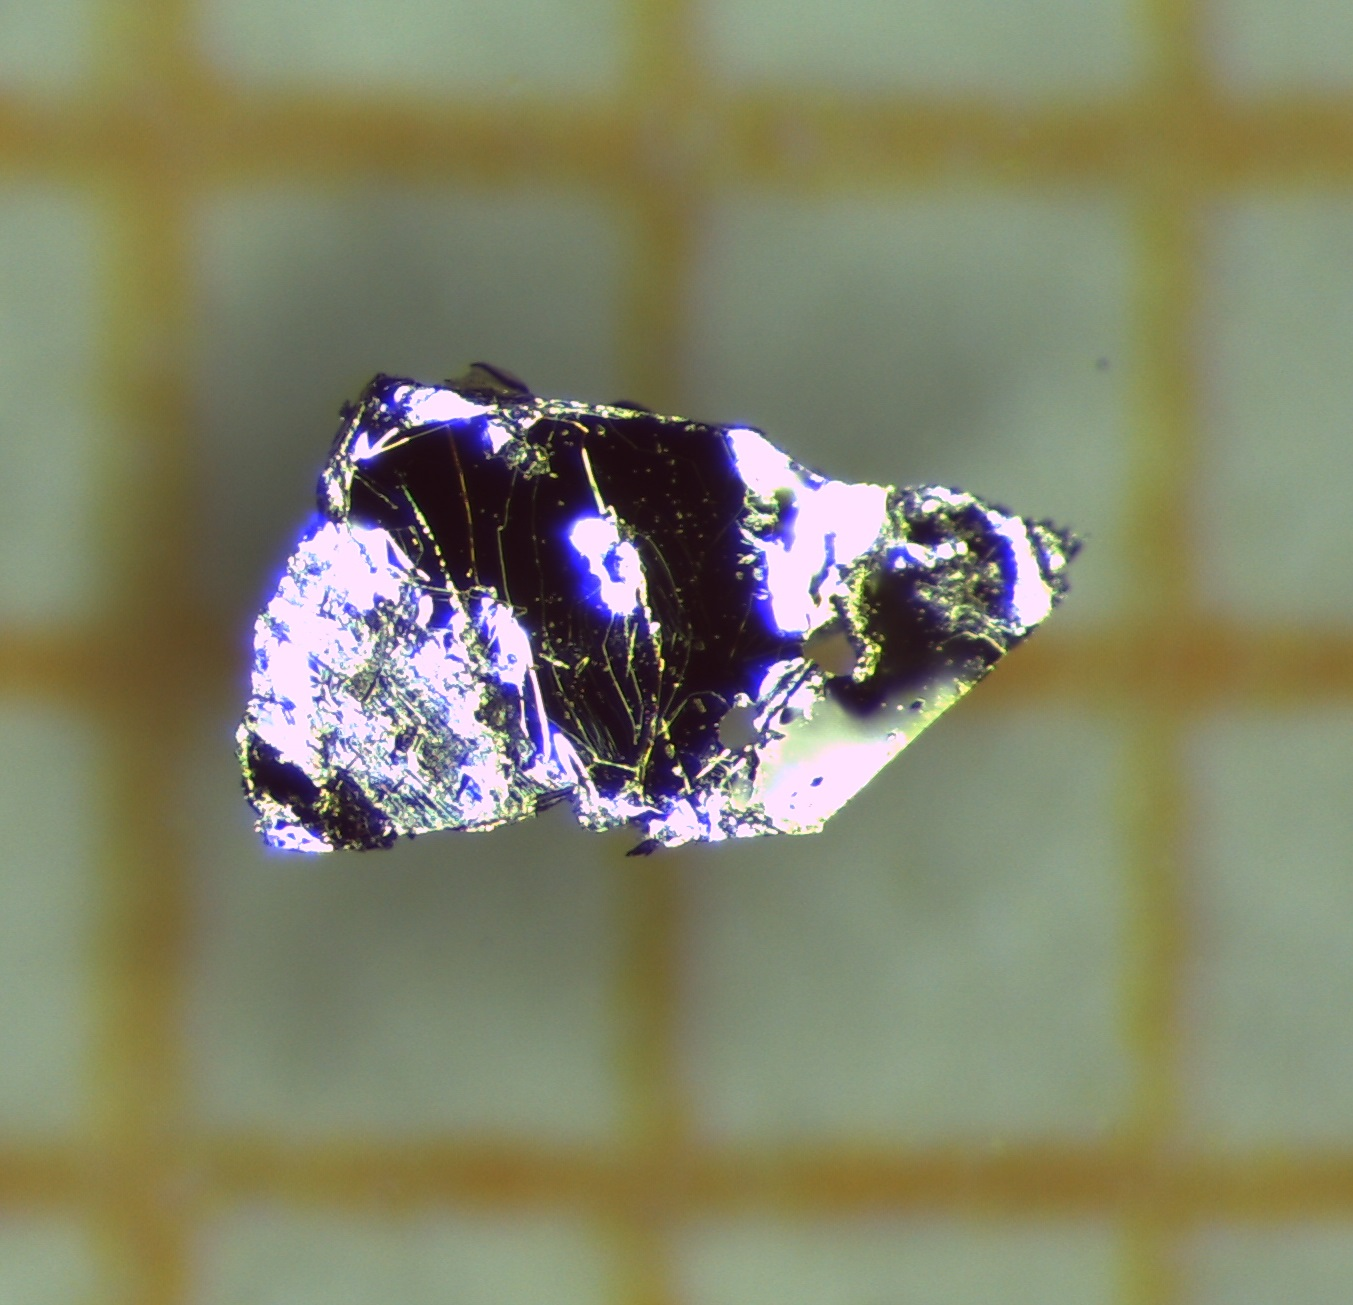 Single crystal of the material manganese bismuth telluride, almost one millimeter in length. It is the first antiferromagnetic topological insulator the first antiferromagnetic topological insulator. Photo: A. Isaeva, TU Dresden/IFW Dresden